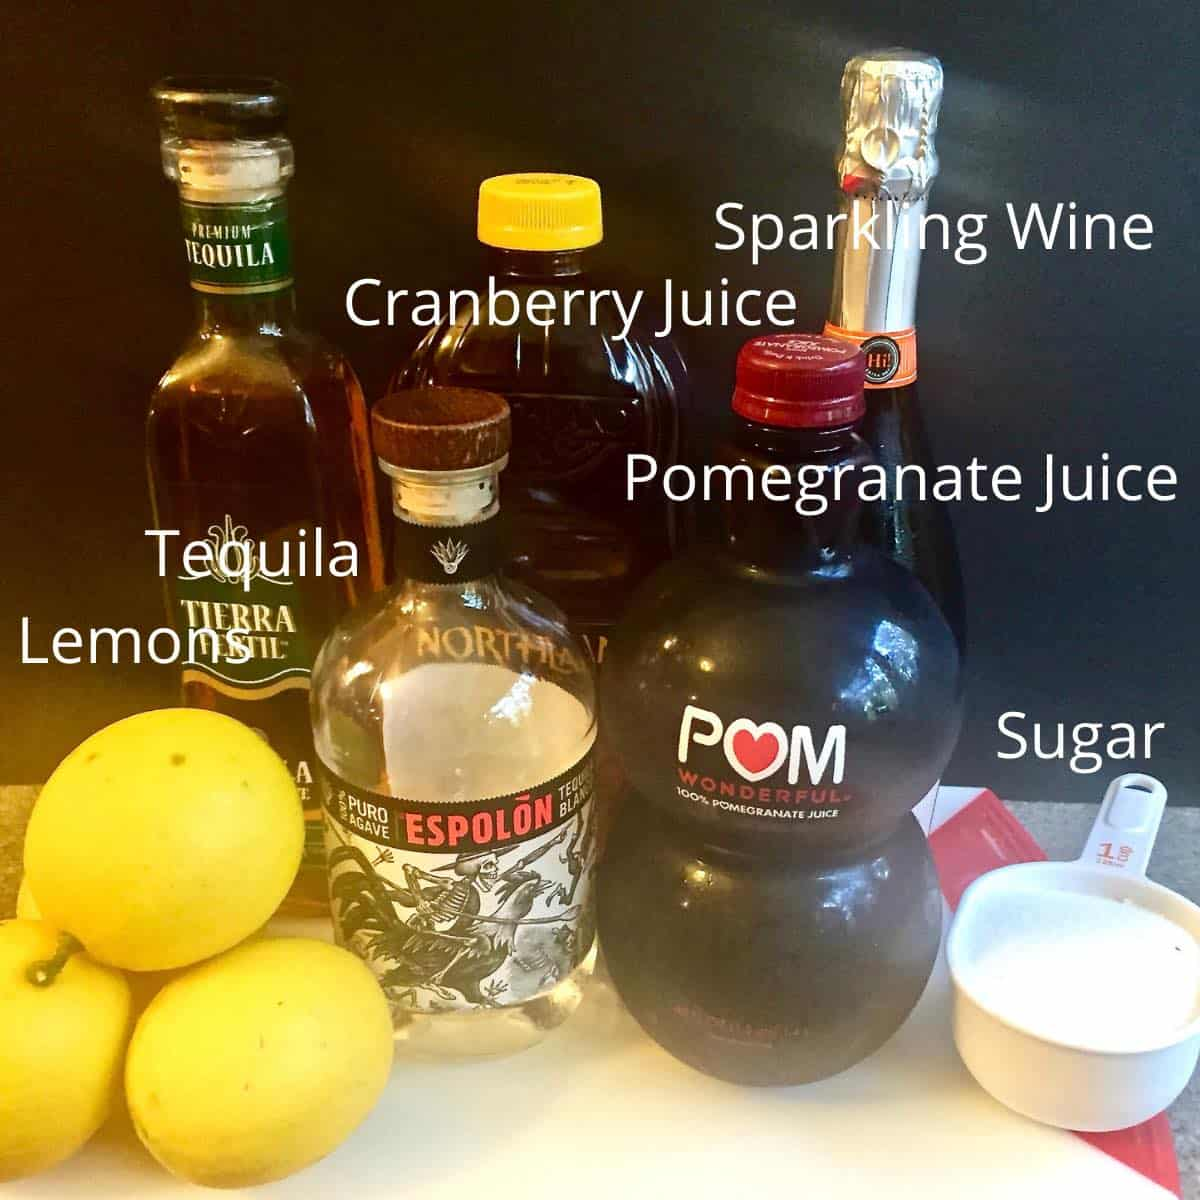 Lemons, tequila, pomegranate juice and other ingredients for punch.